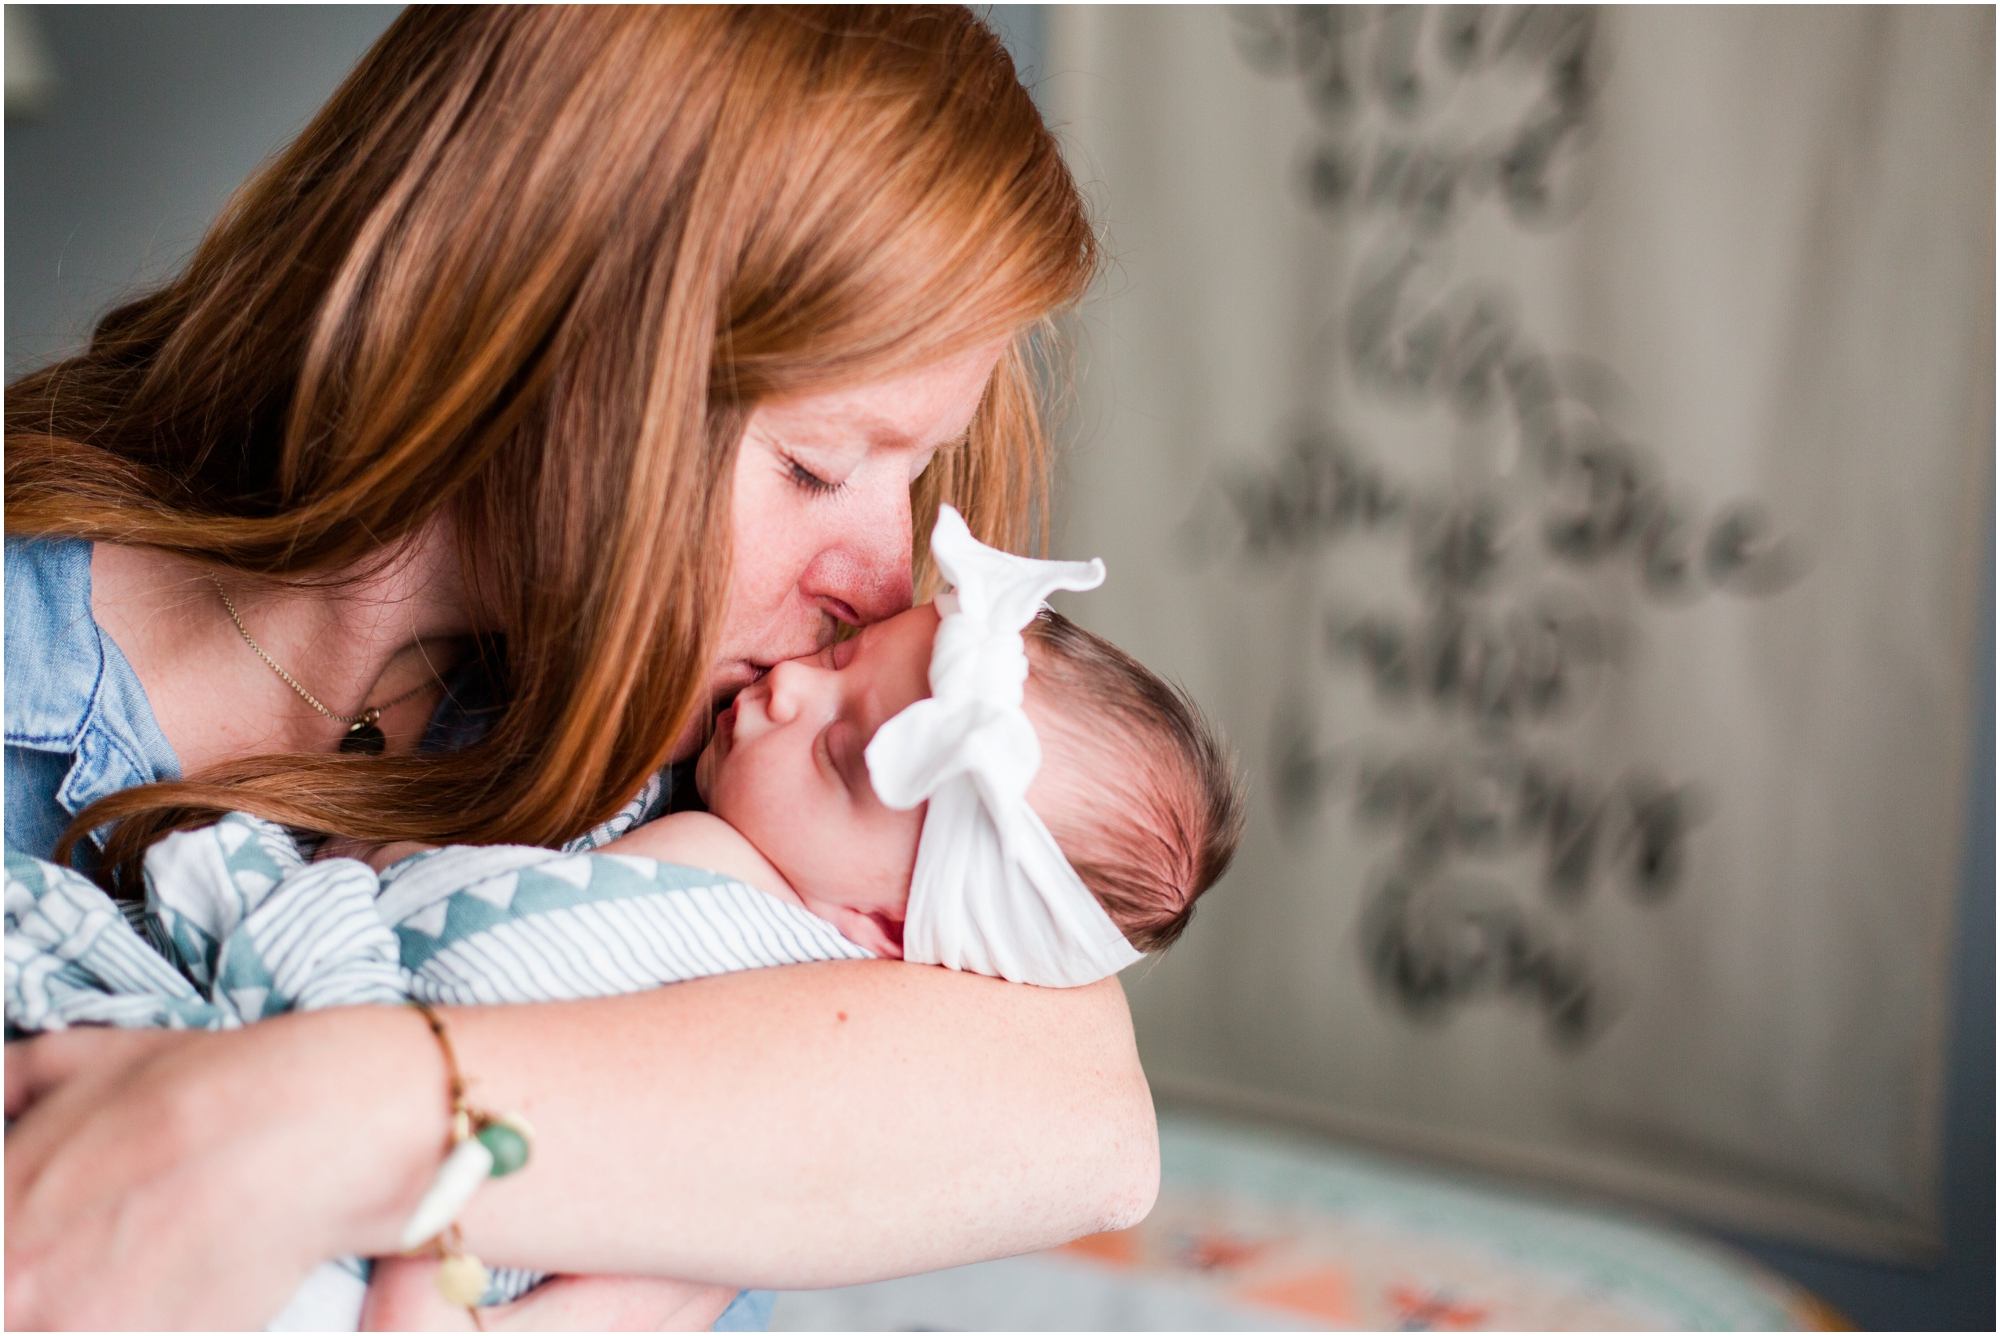 Seattle lifestyle newborn photos by Briana Calderon Photography based in the Greater Seattle & Tacoma, WA_0714.jpg